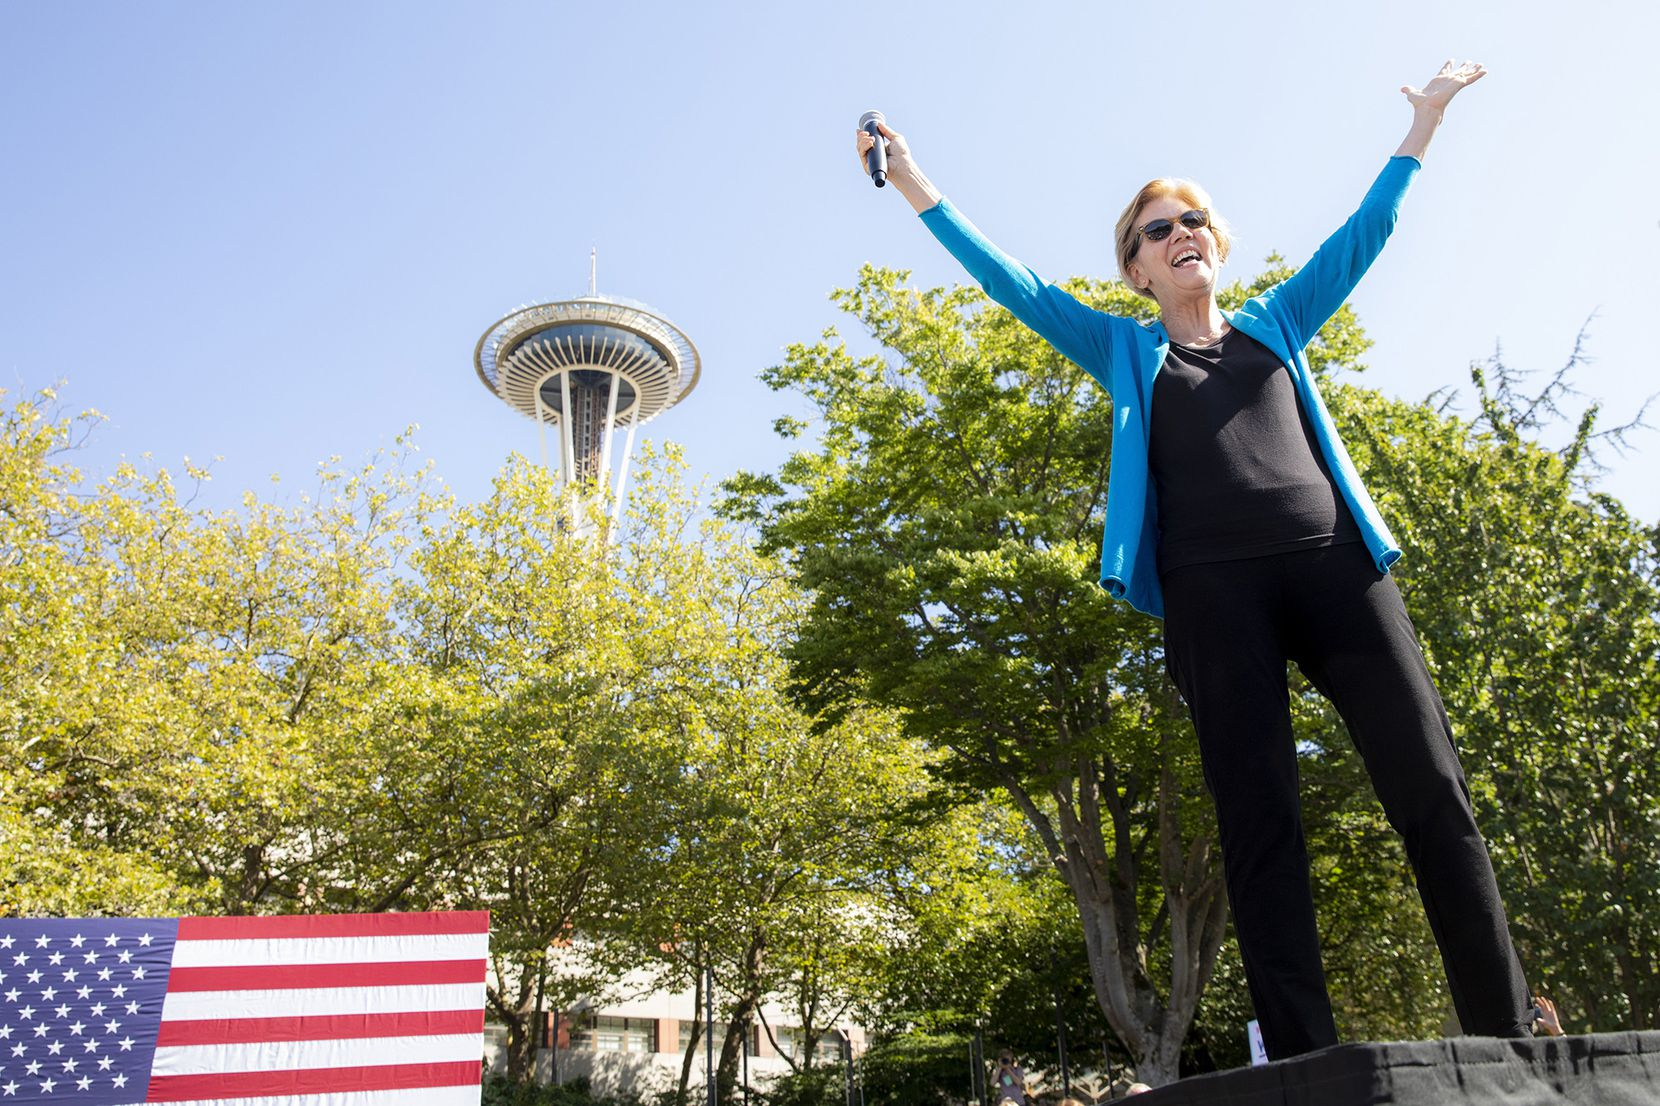 Democratic presidential candidate Elizabeth Warren, a U.S. senator from Massachusetts, campaigns with a town hall event at Seattle Center Sunday, Aug. 25, 2019.